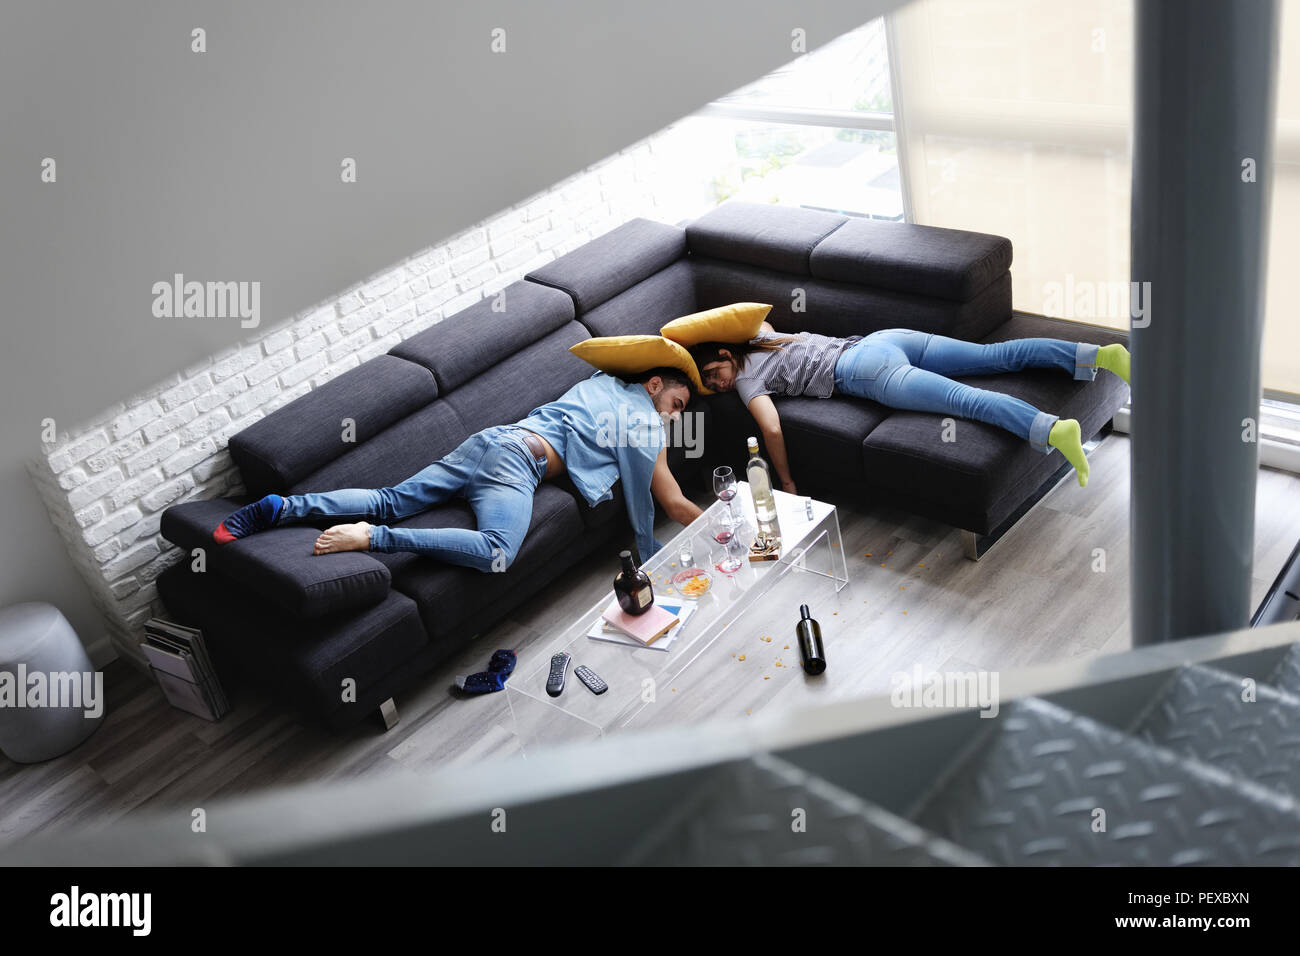 Drunk Friends Sleeping On Sofa In Messy Room After Party - Stock Image